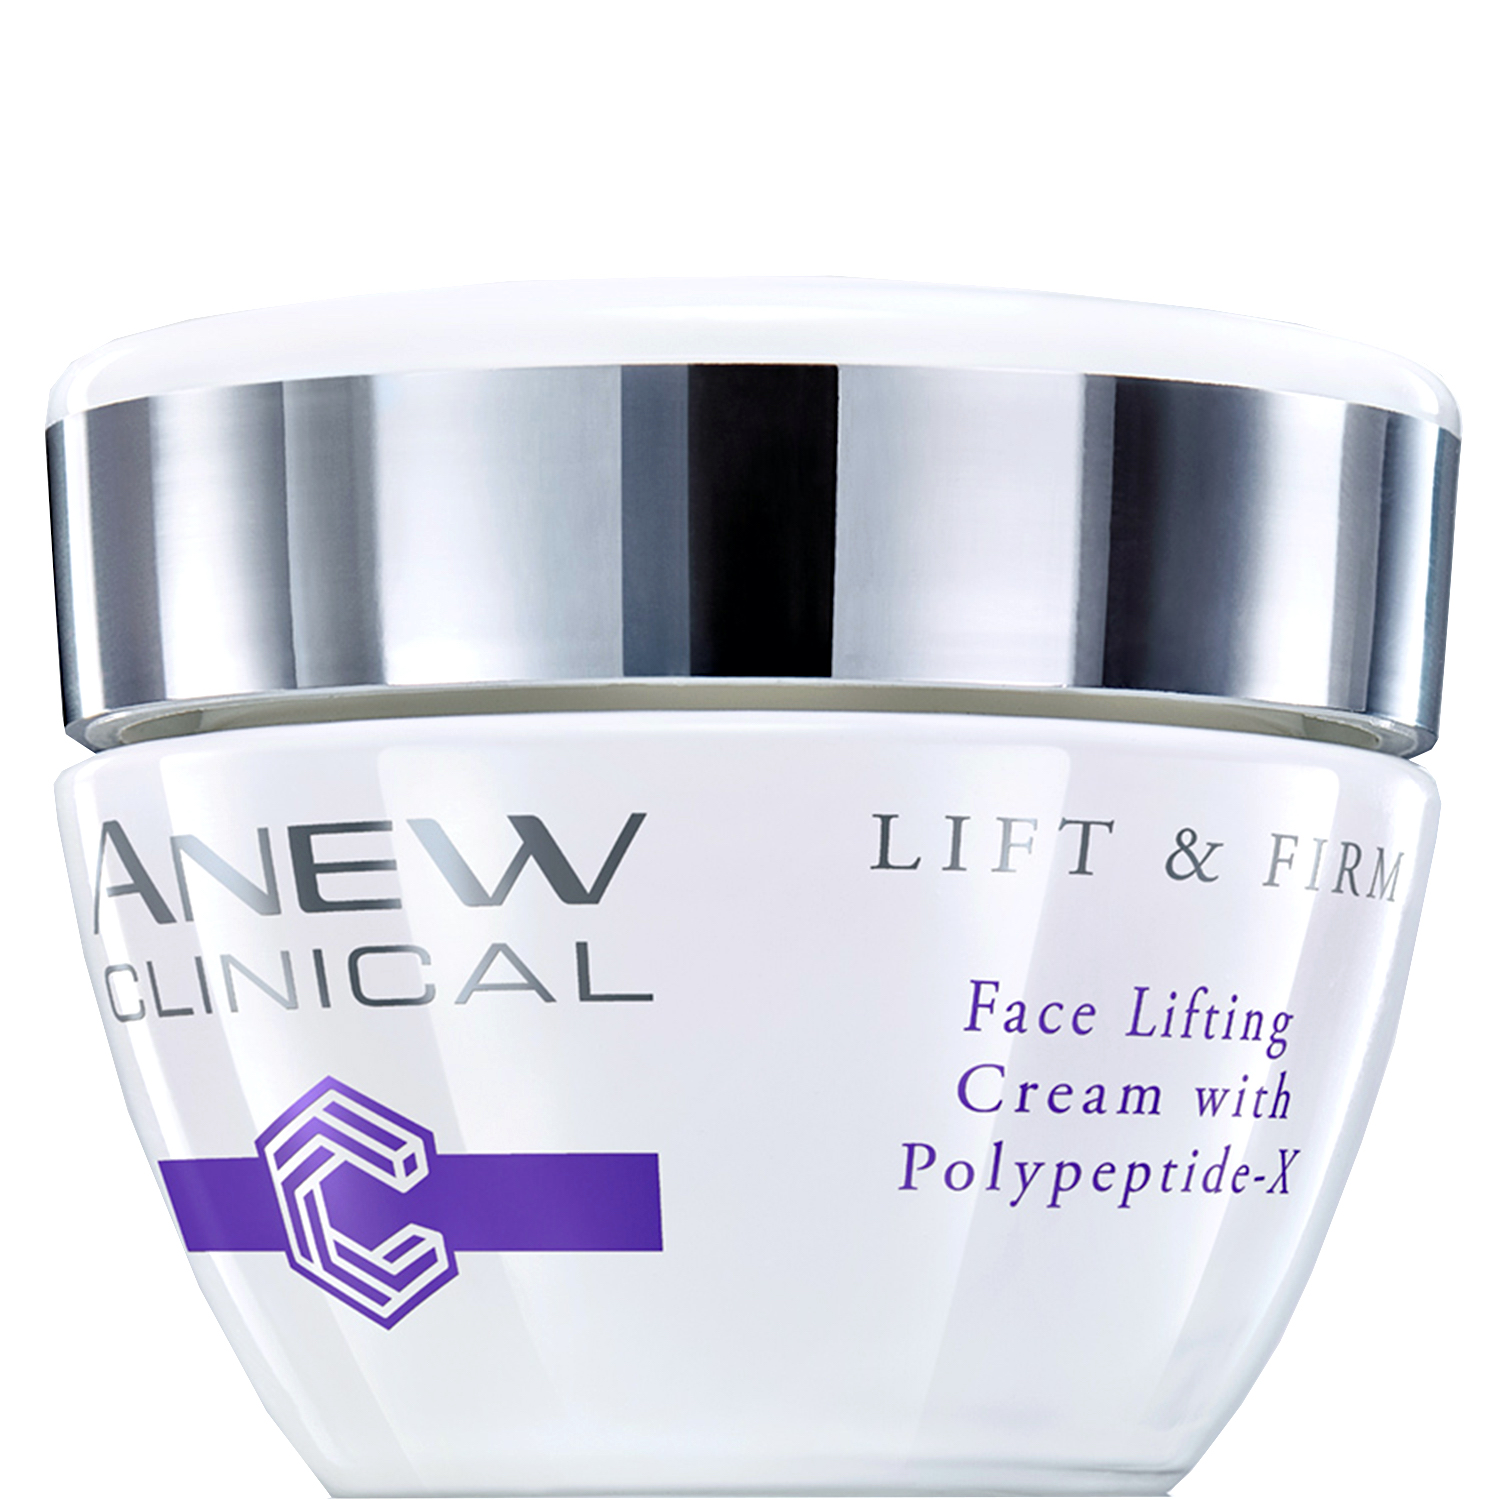 Anew Clinical Lift & Firm Face Lifting Cream 50ml by AVON